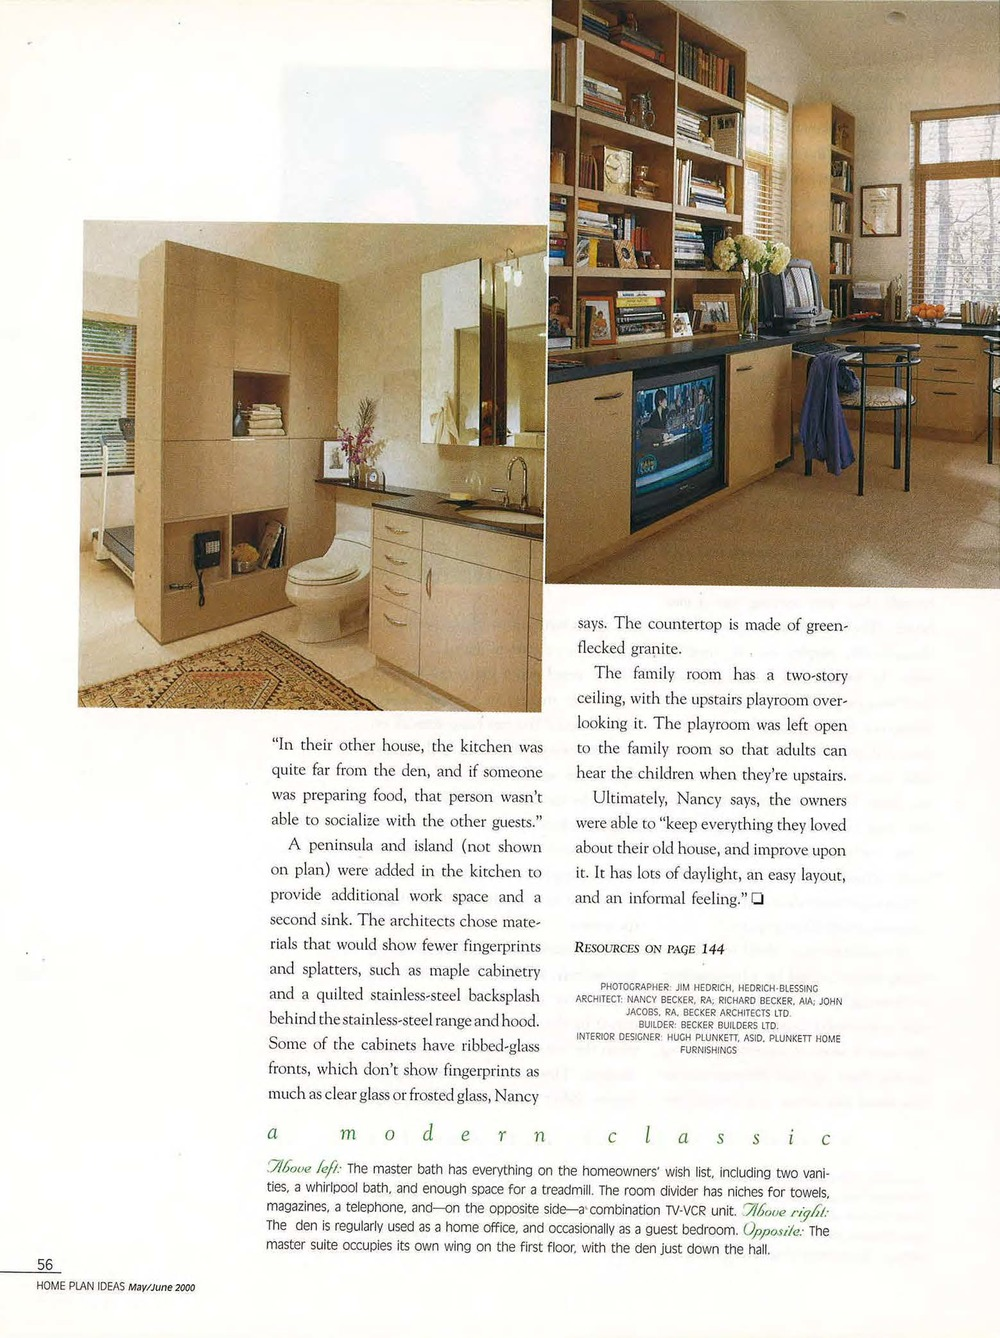 2000 Home Plan Ideas_Page_11.jpg